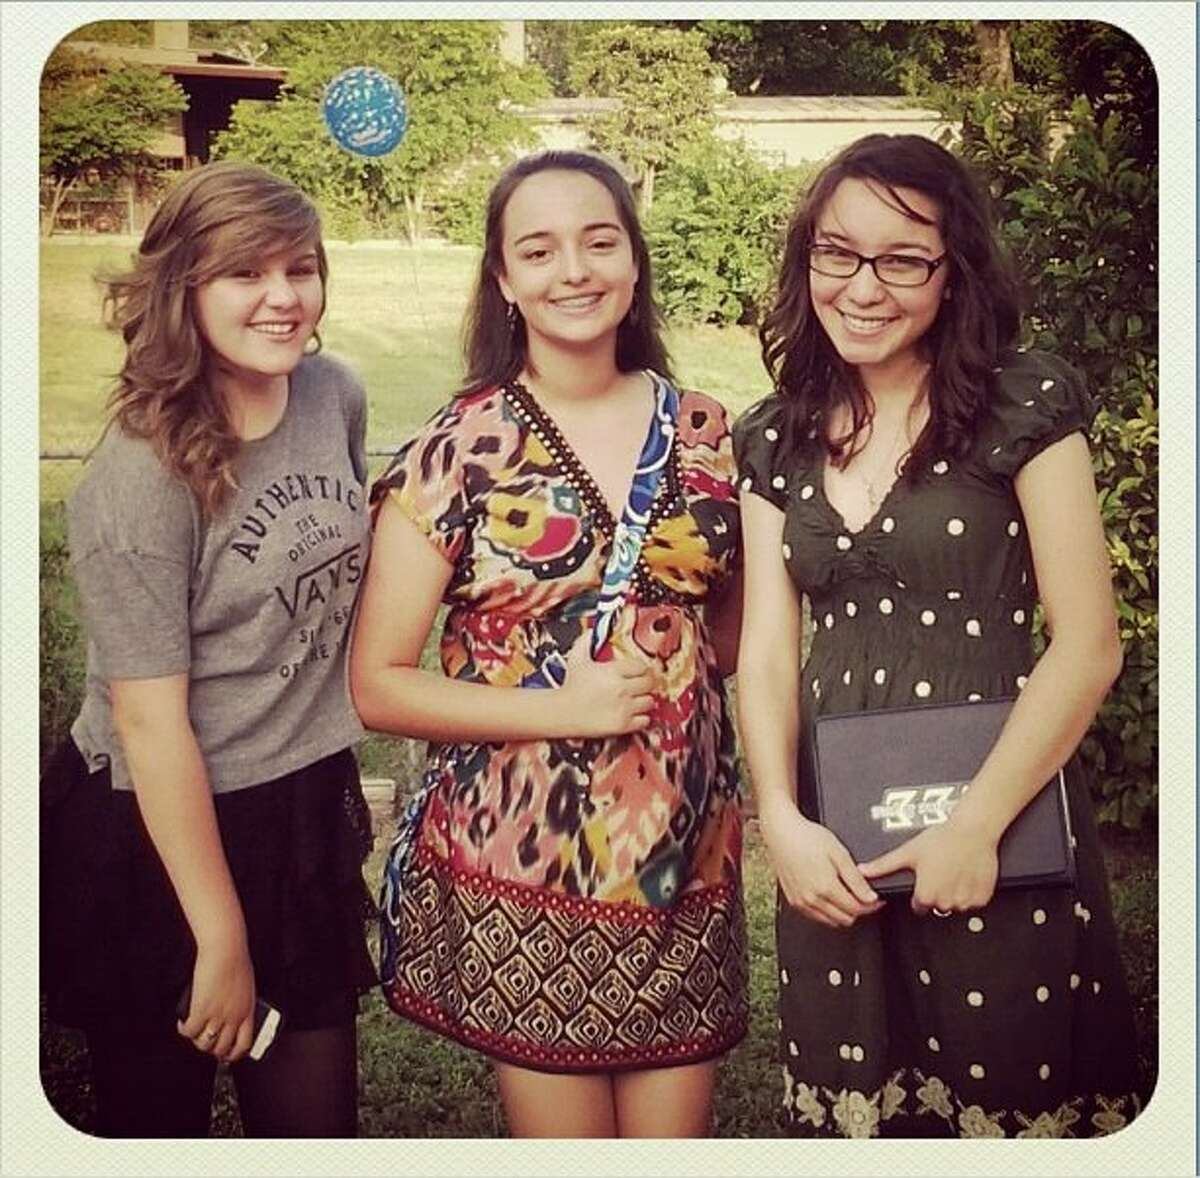 Eighteen-year-old Valeria Cortez (center), died on May 22, just days before her high school graduation after battling leukemia.